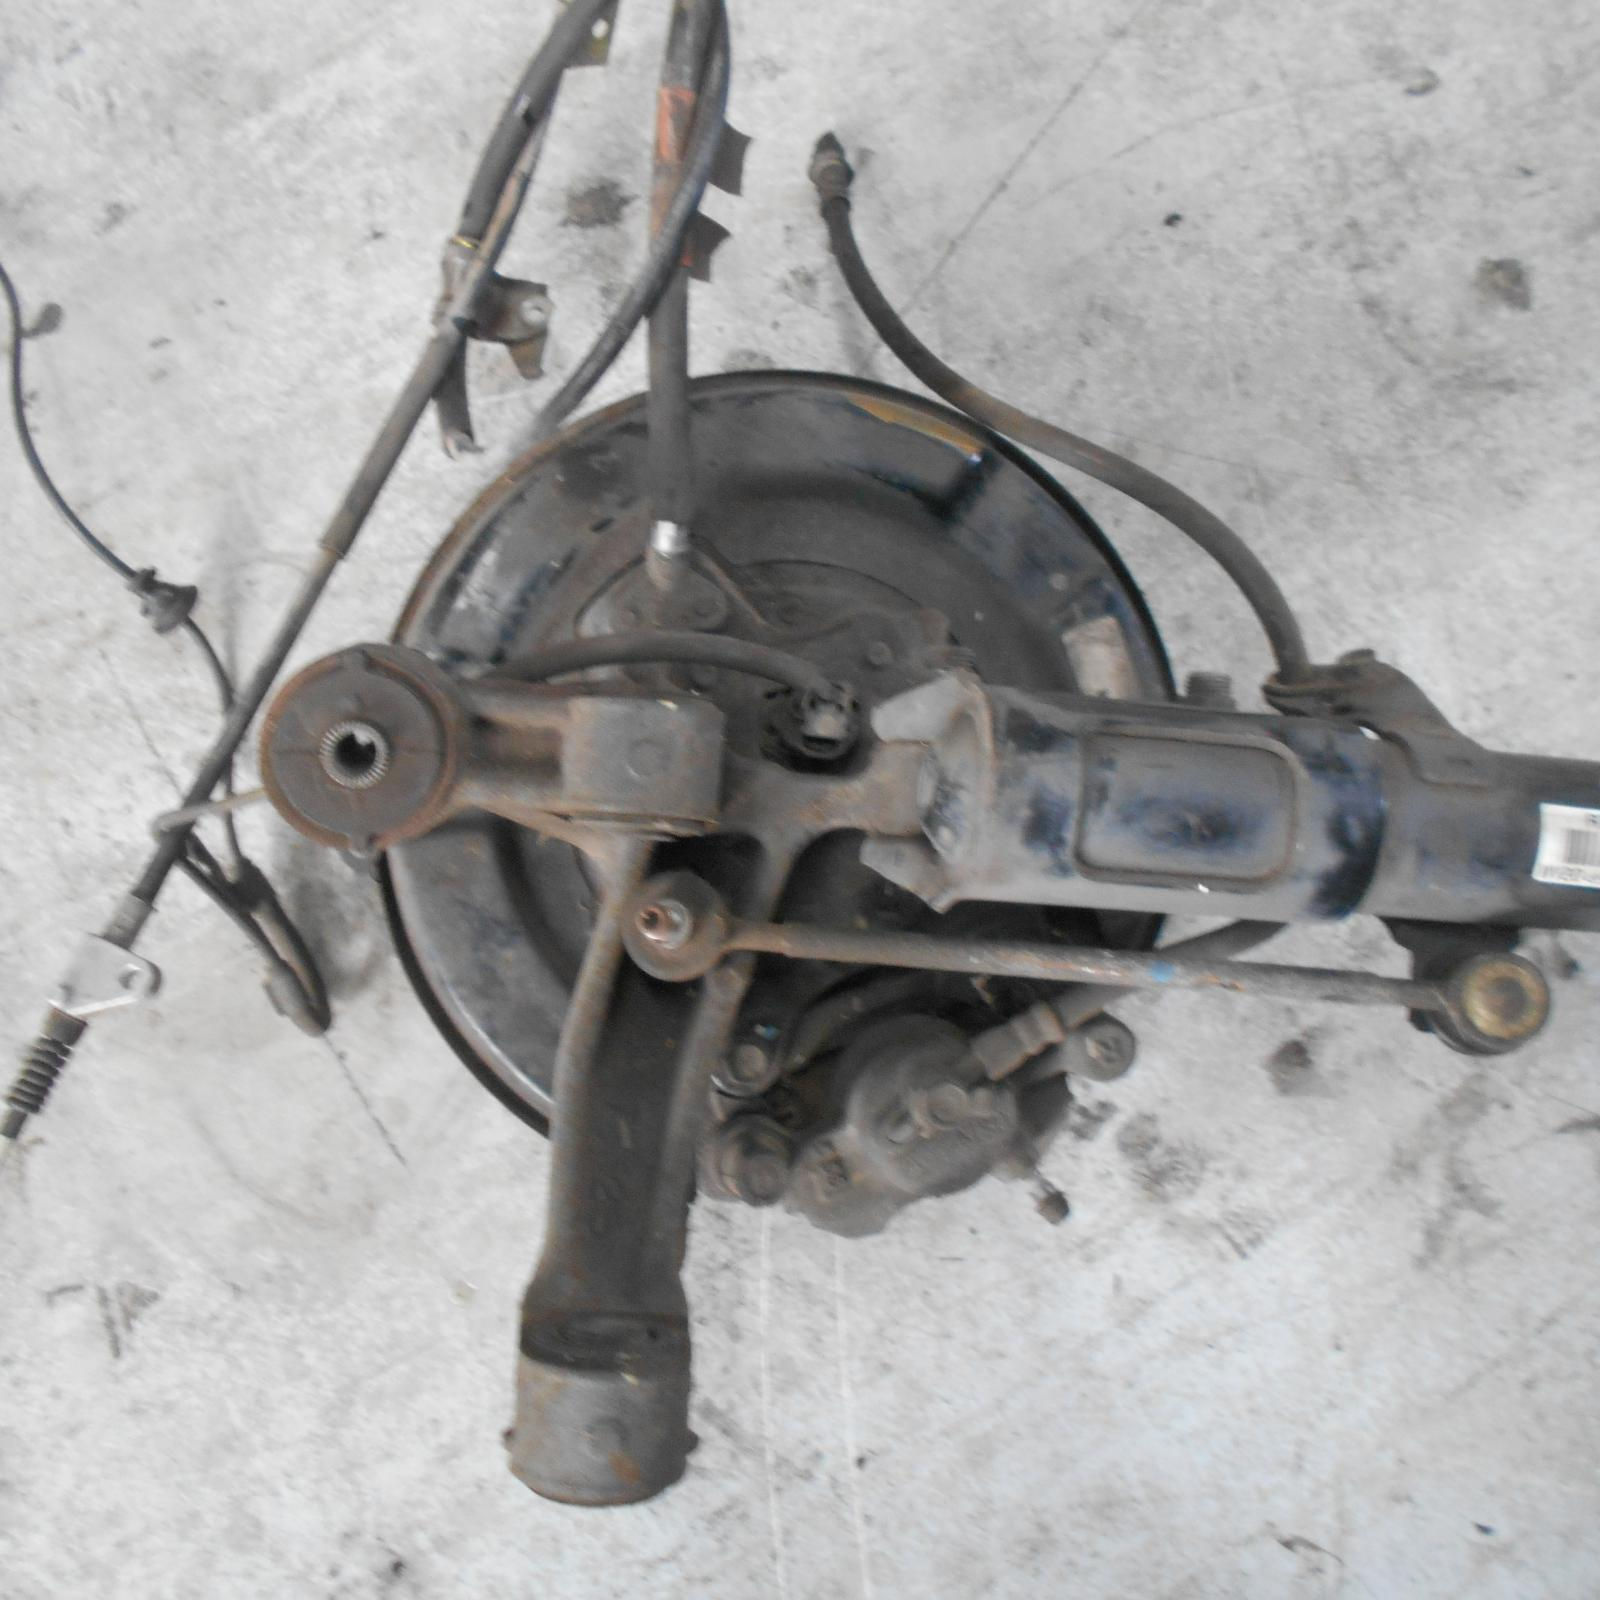 LEXUS ES300, Right Rear Hub Assembly, MCV30, ABS TYPE, 10/01-12/05